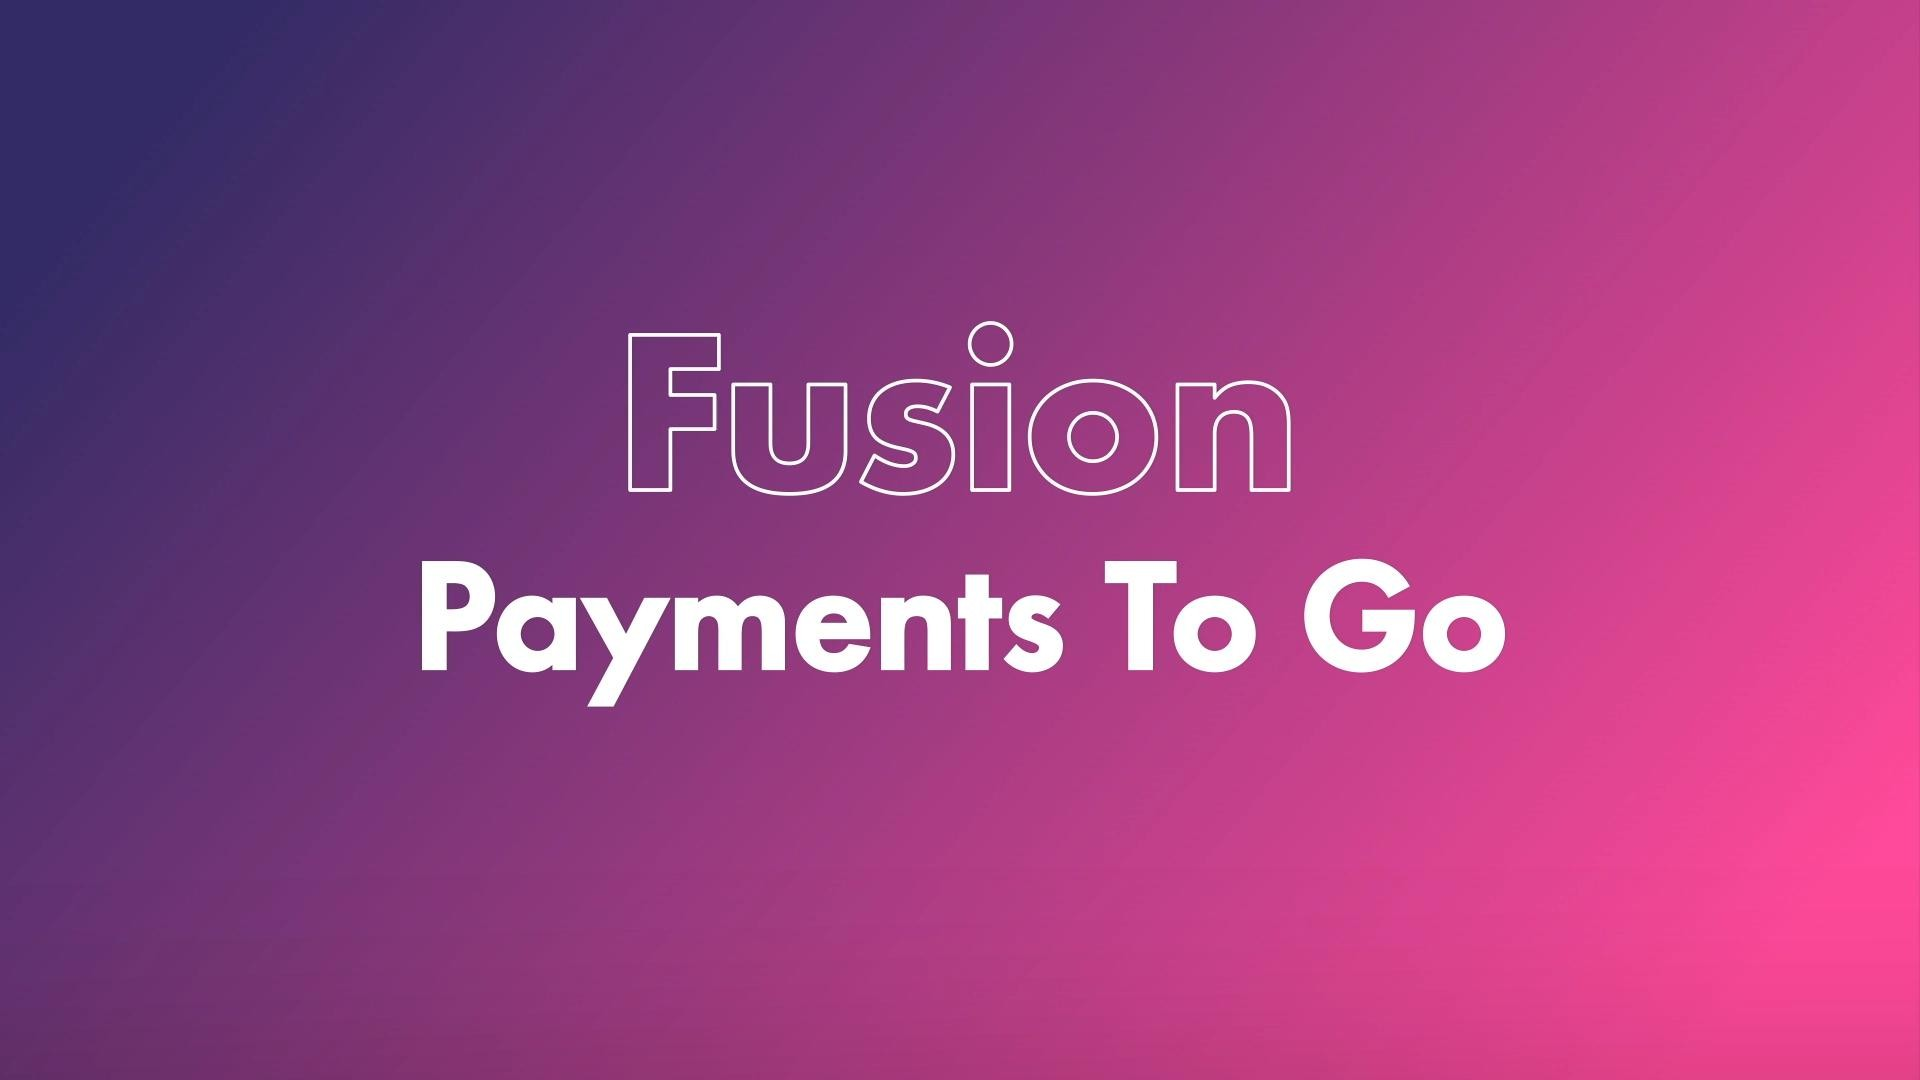 Fusion Payments To Go – Overview Animation